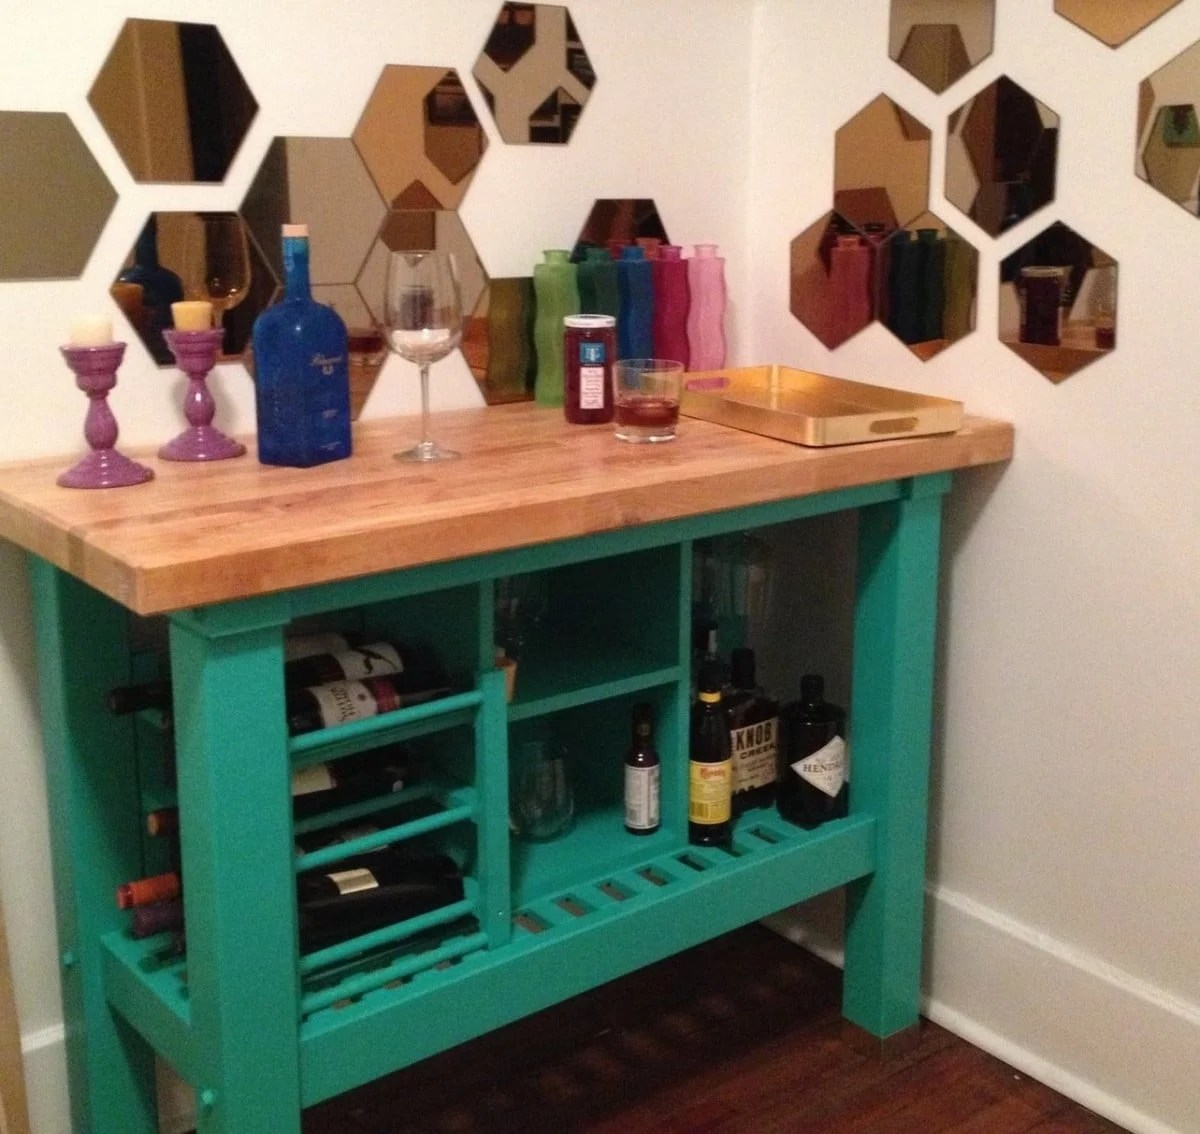 21 Amazing Shelf Rack Ideas For Your Home: Kitchen Island Turned Custom Bar